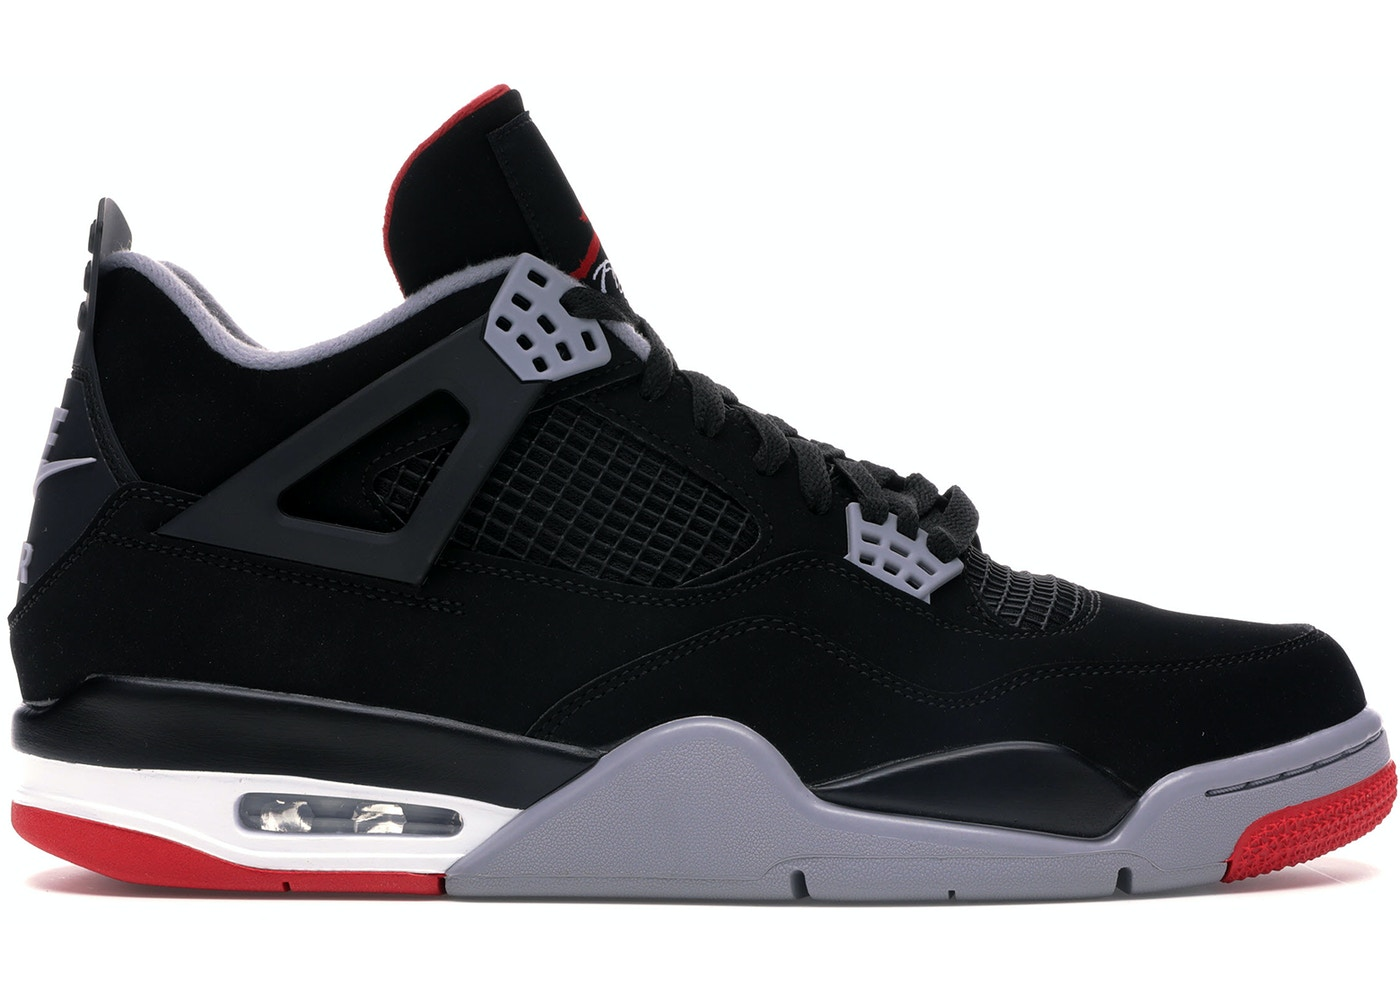 huge selection of 6bd87 d909a Jordan 4 Retro Bred (2019) - 308497-060